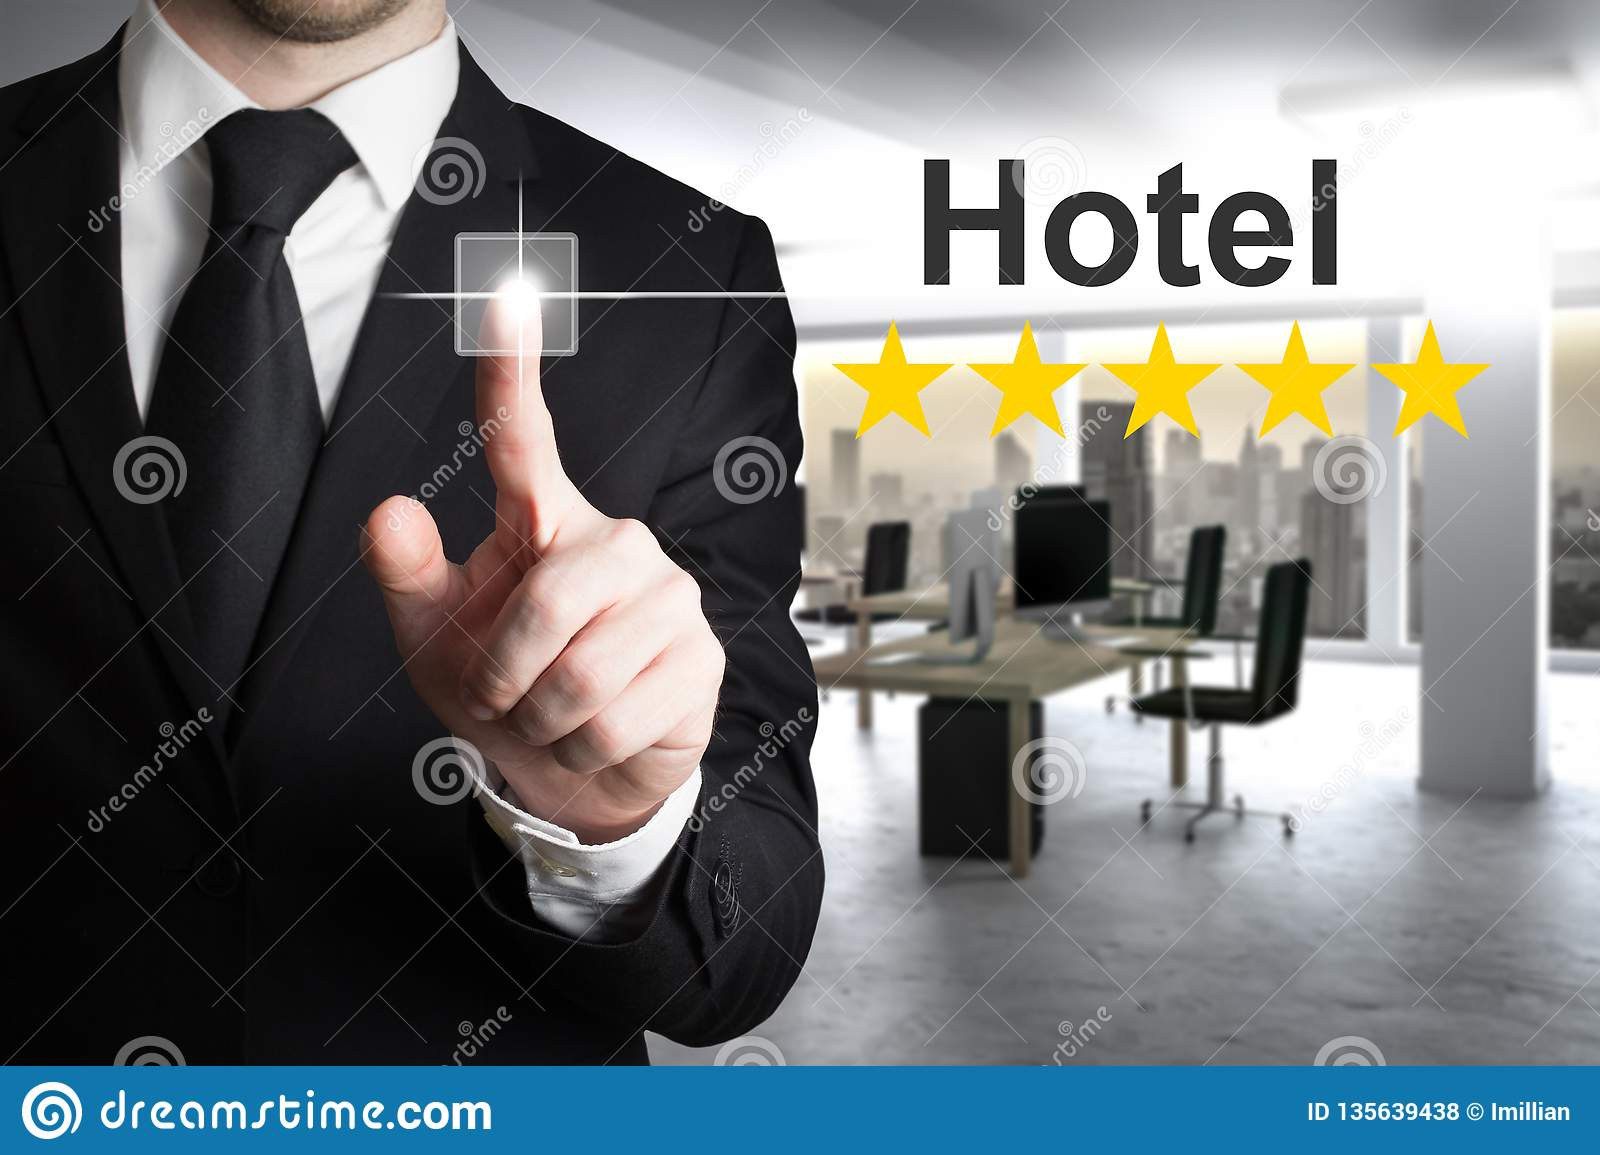 Businessman in modern office pushing touchscreen hotel rating five stars